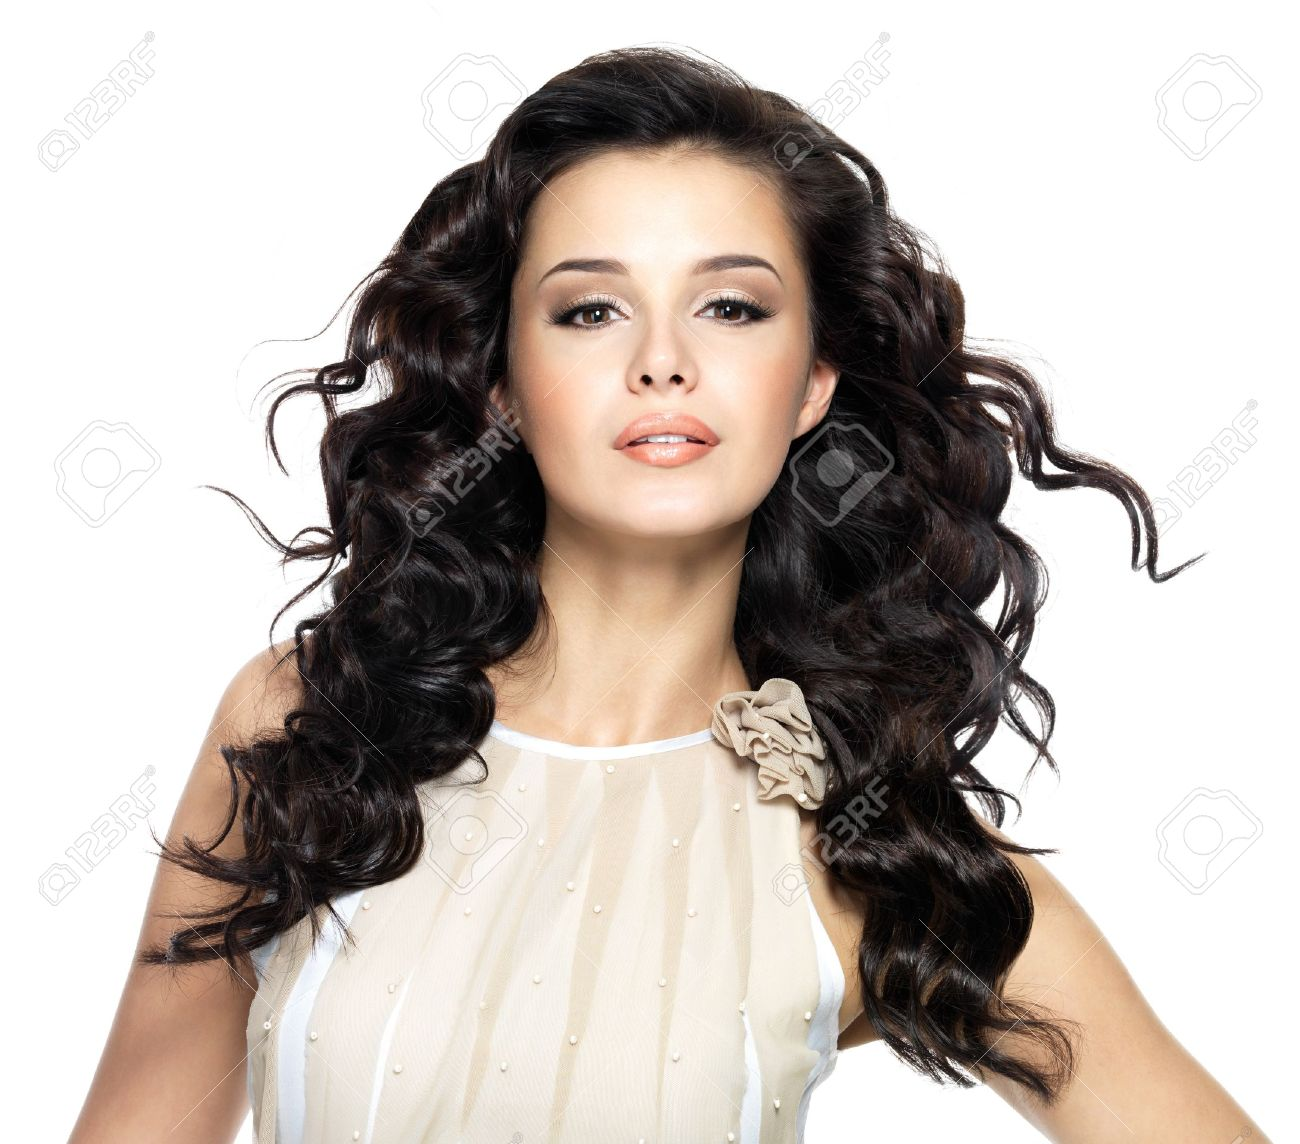 Beautiful brunette woman with beauty long curly hair. Fashion model with wavy hairstyle Stock Photo - 16469075